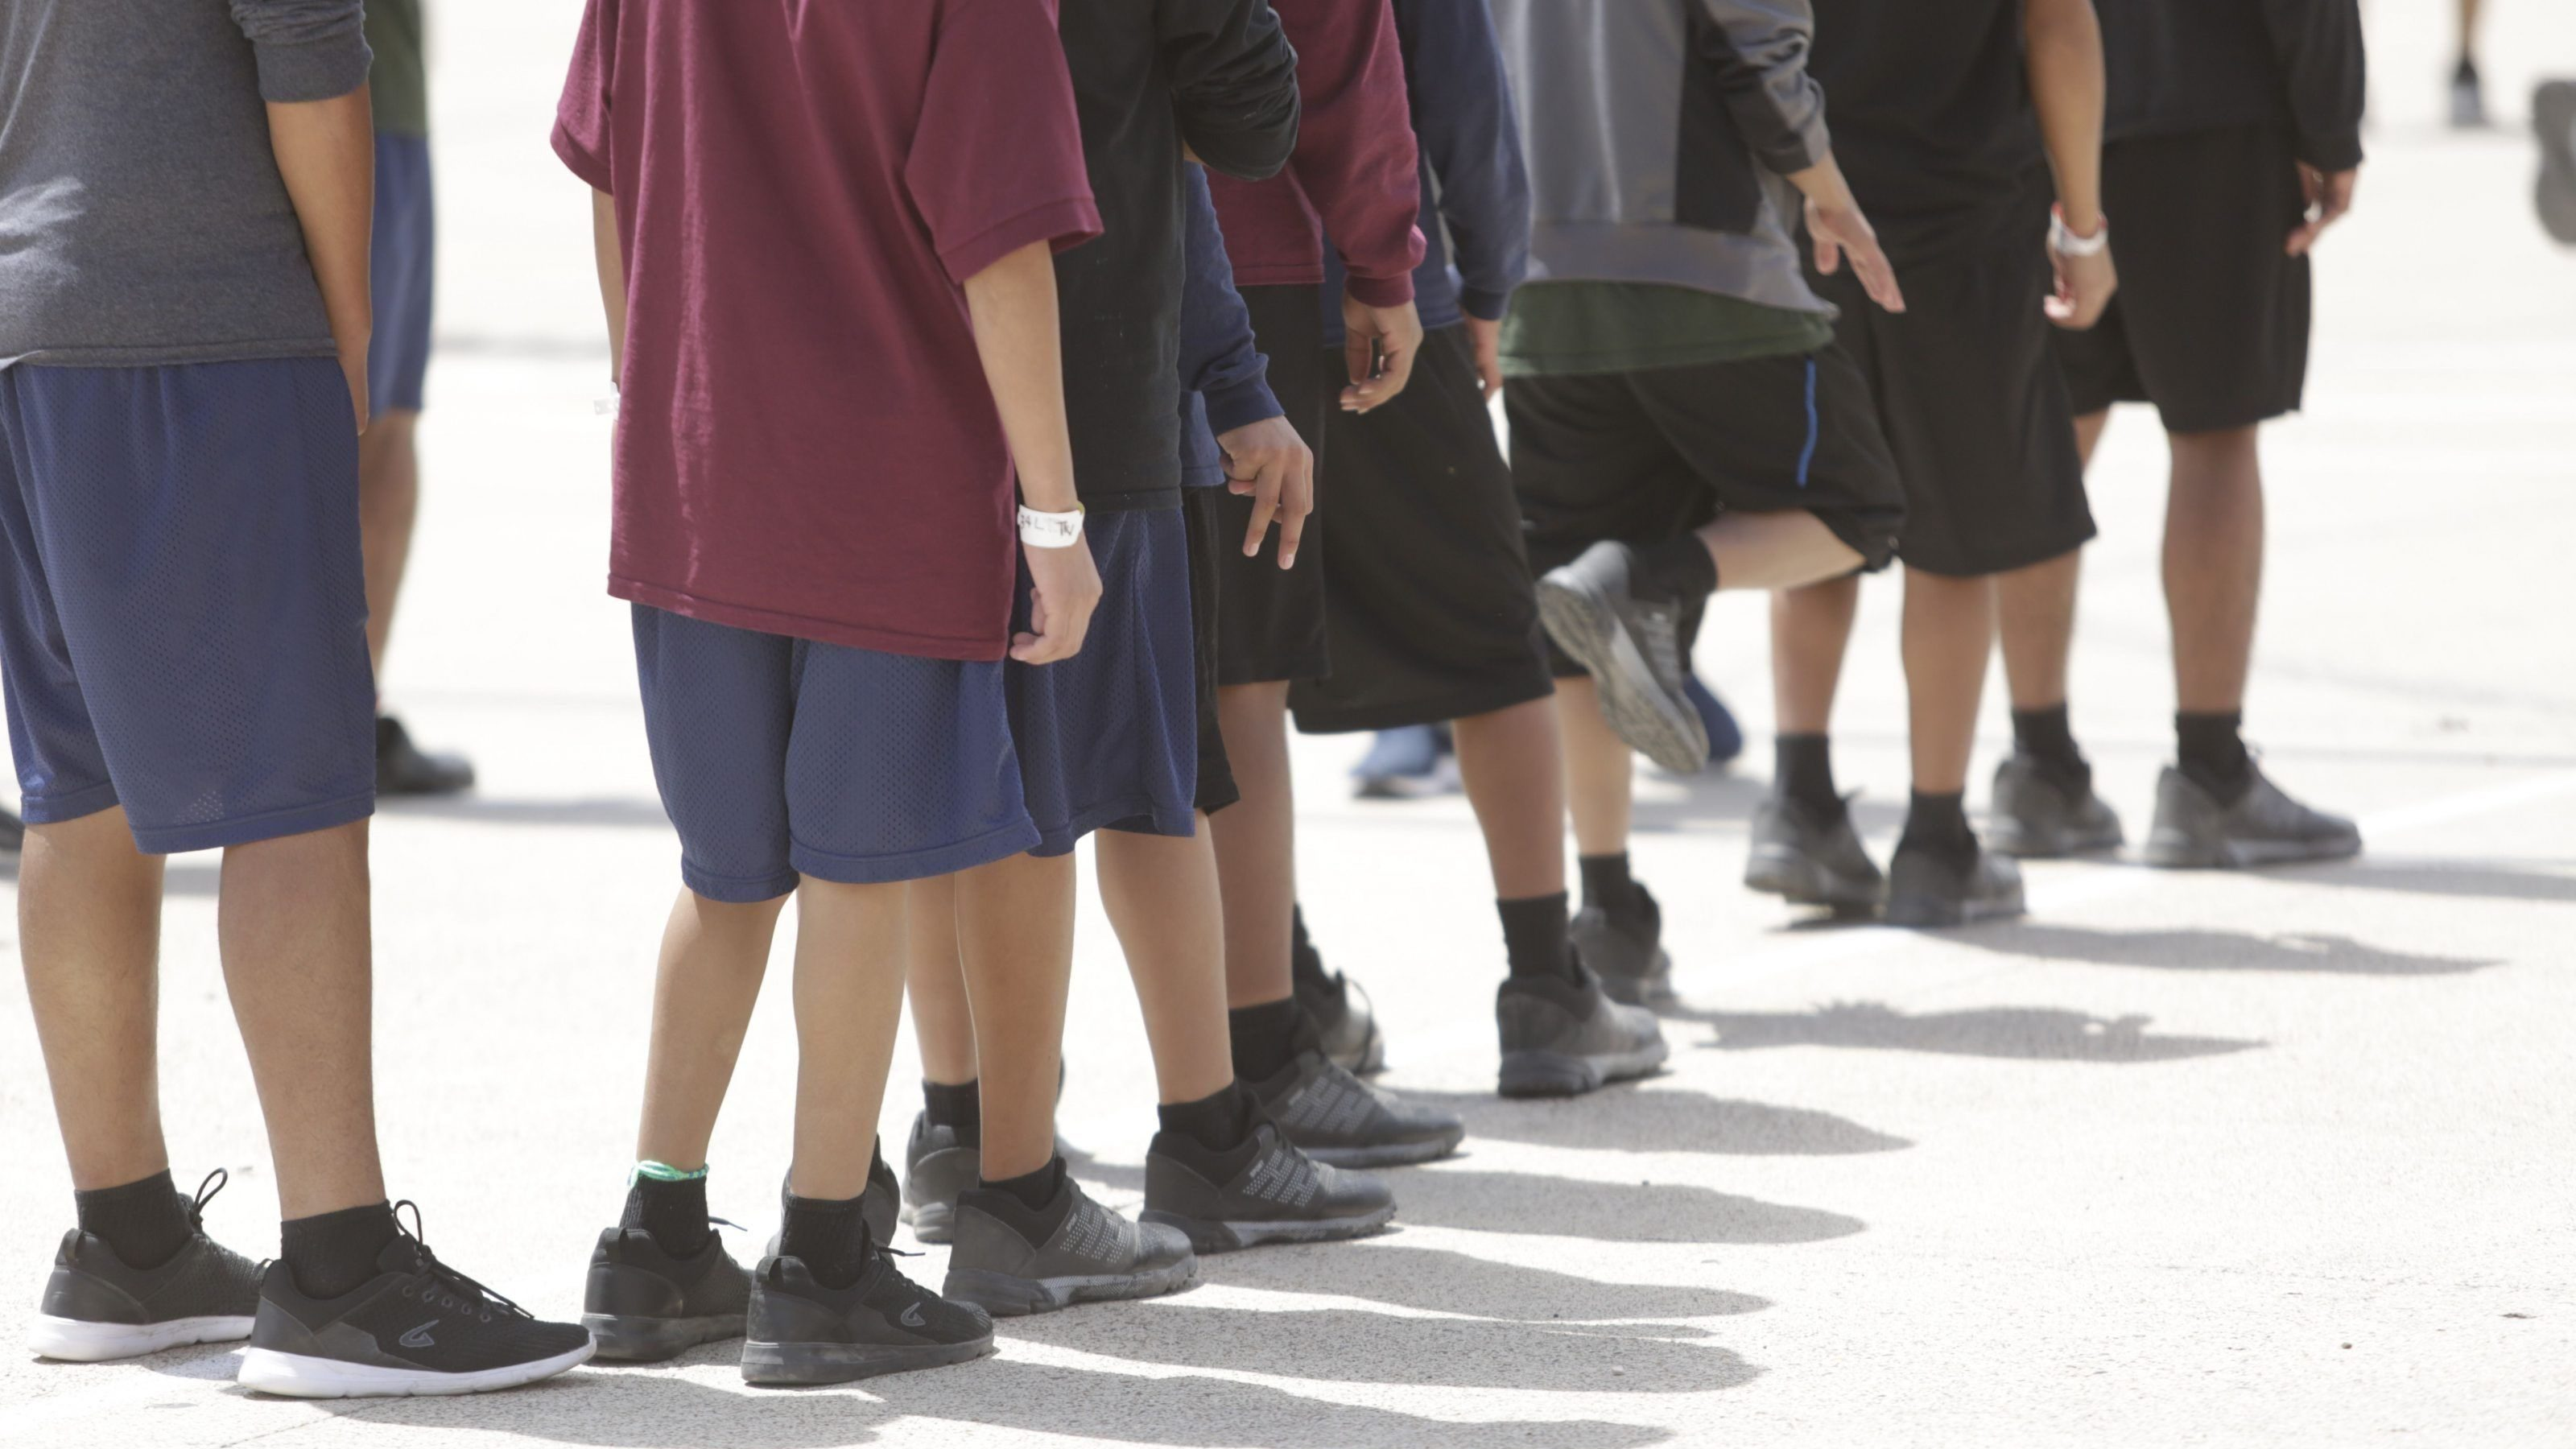 migrant children at Casa Padre, a detention center in texas